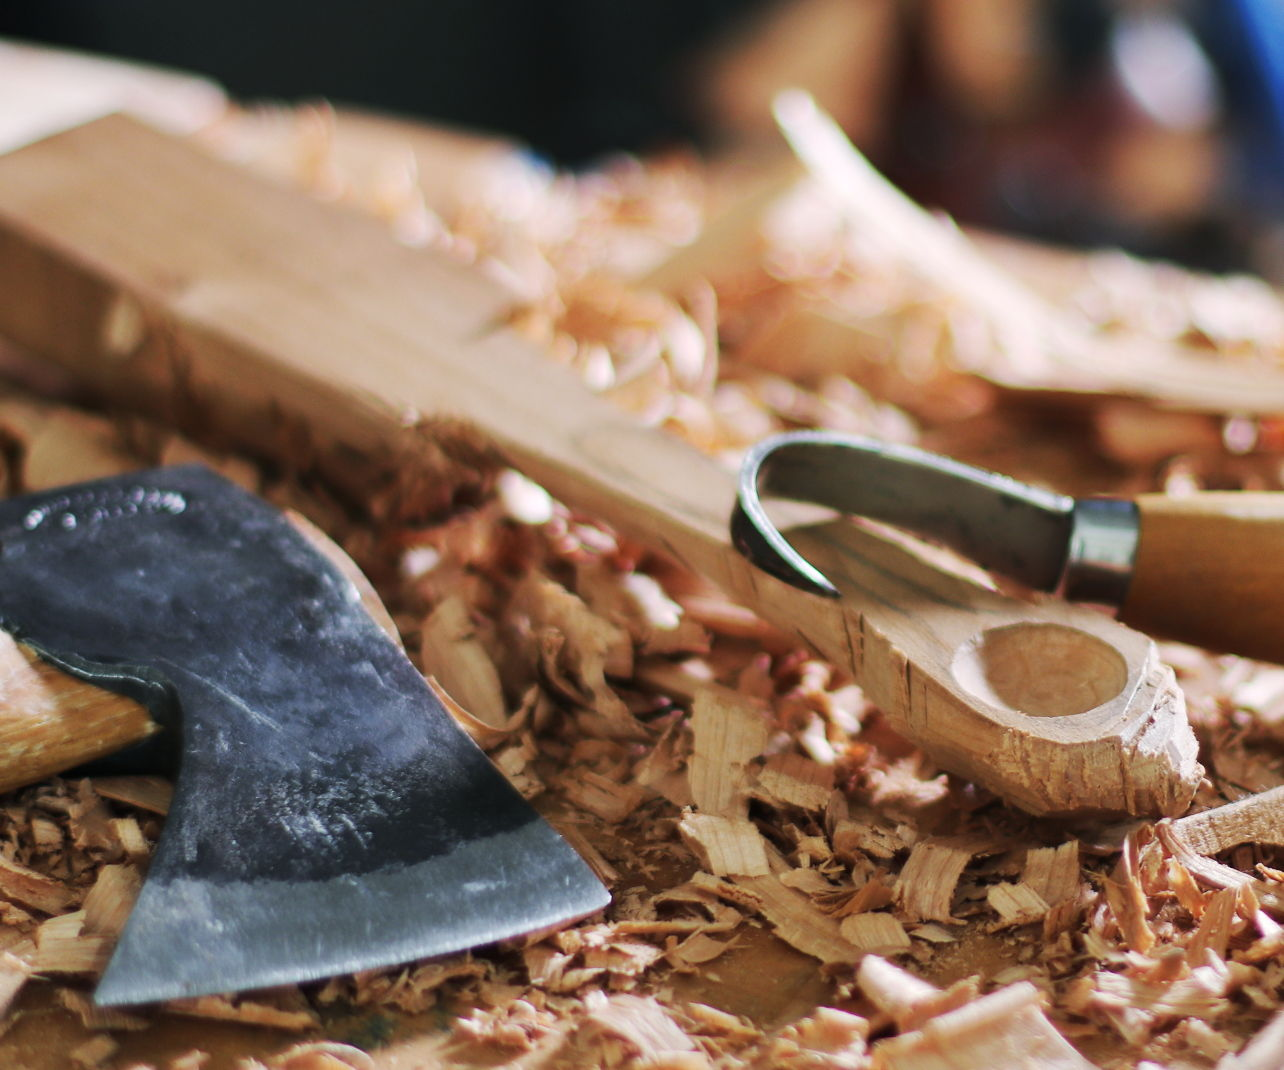 Making a Small Spoon W/ an Axe, Hook Knife & Carving Knife